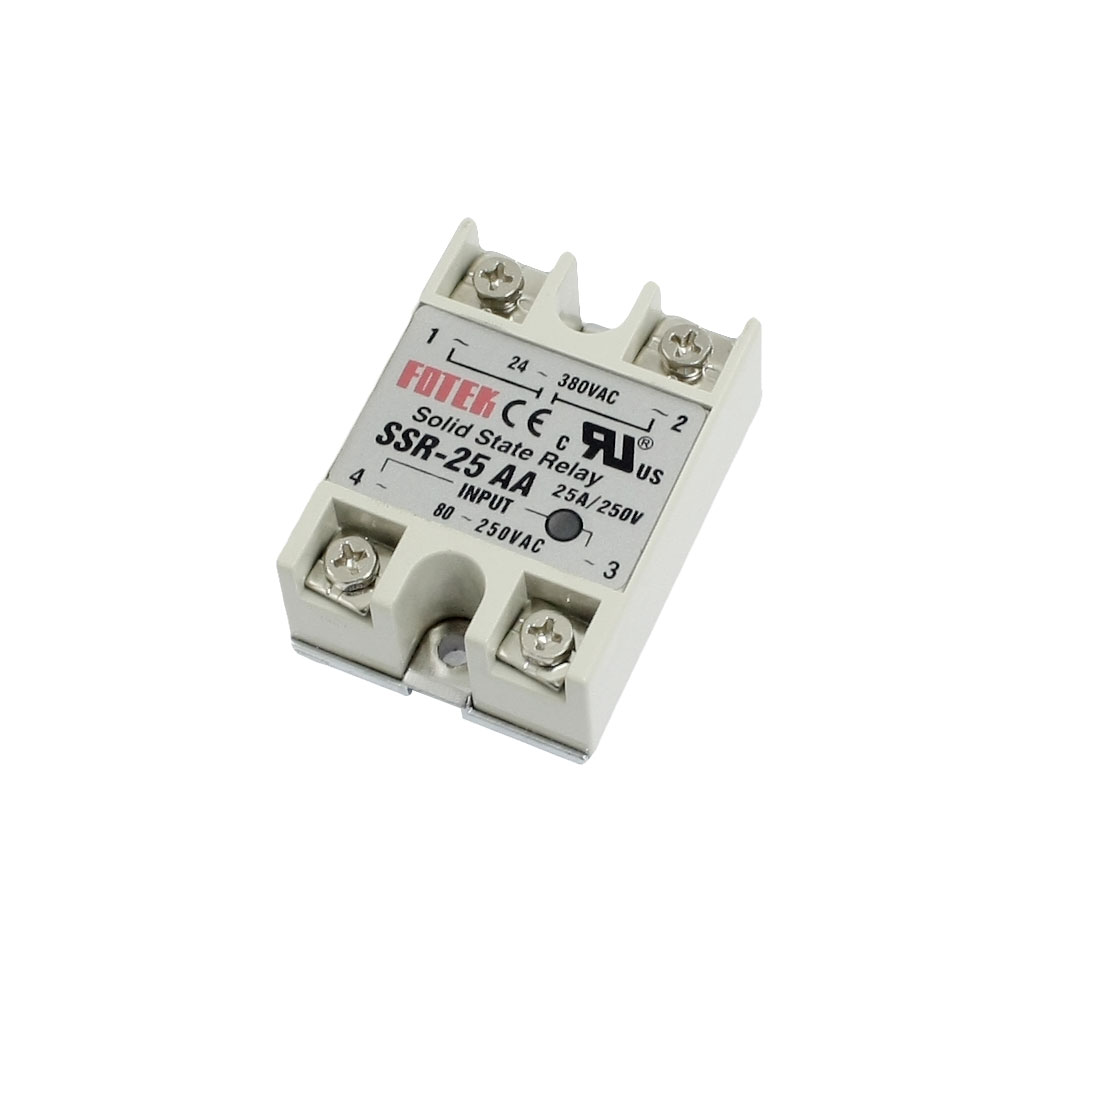 SSR-25AA 80-250V 25A Machinery Control AC Solid Module State Relays